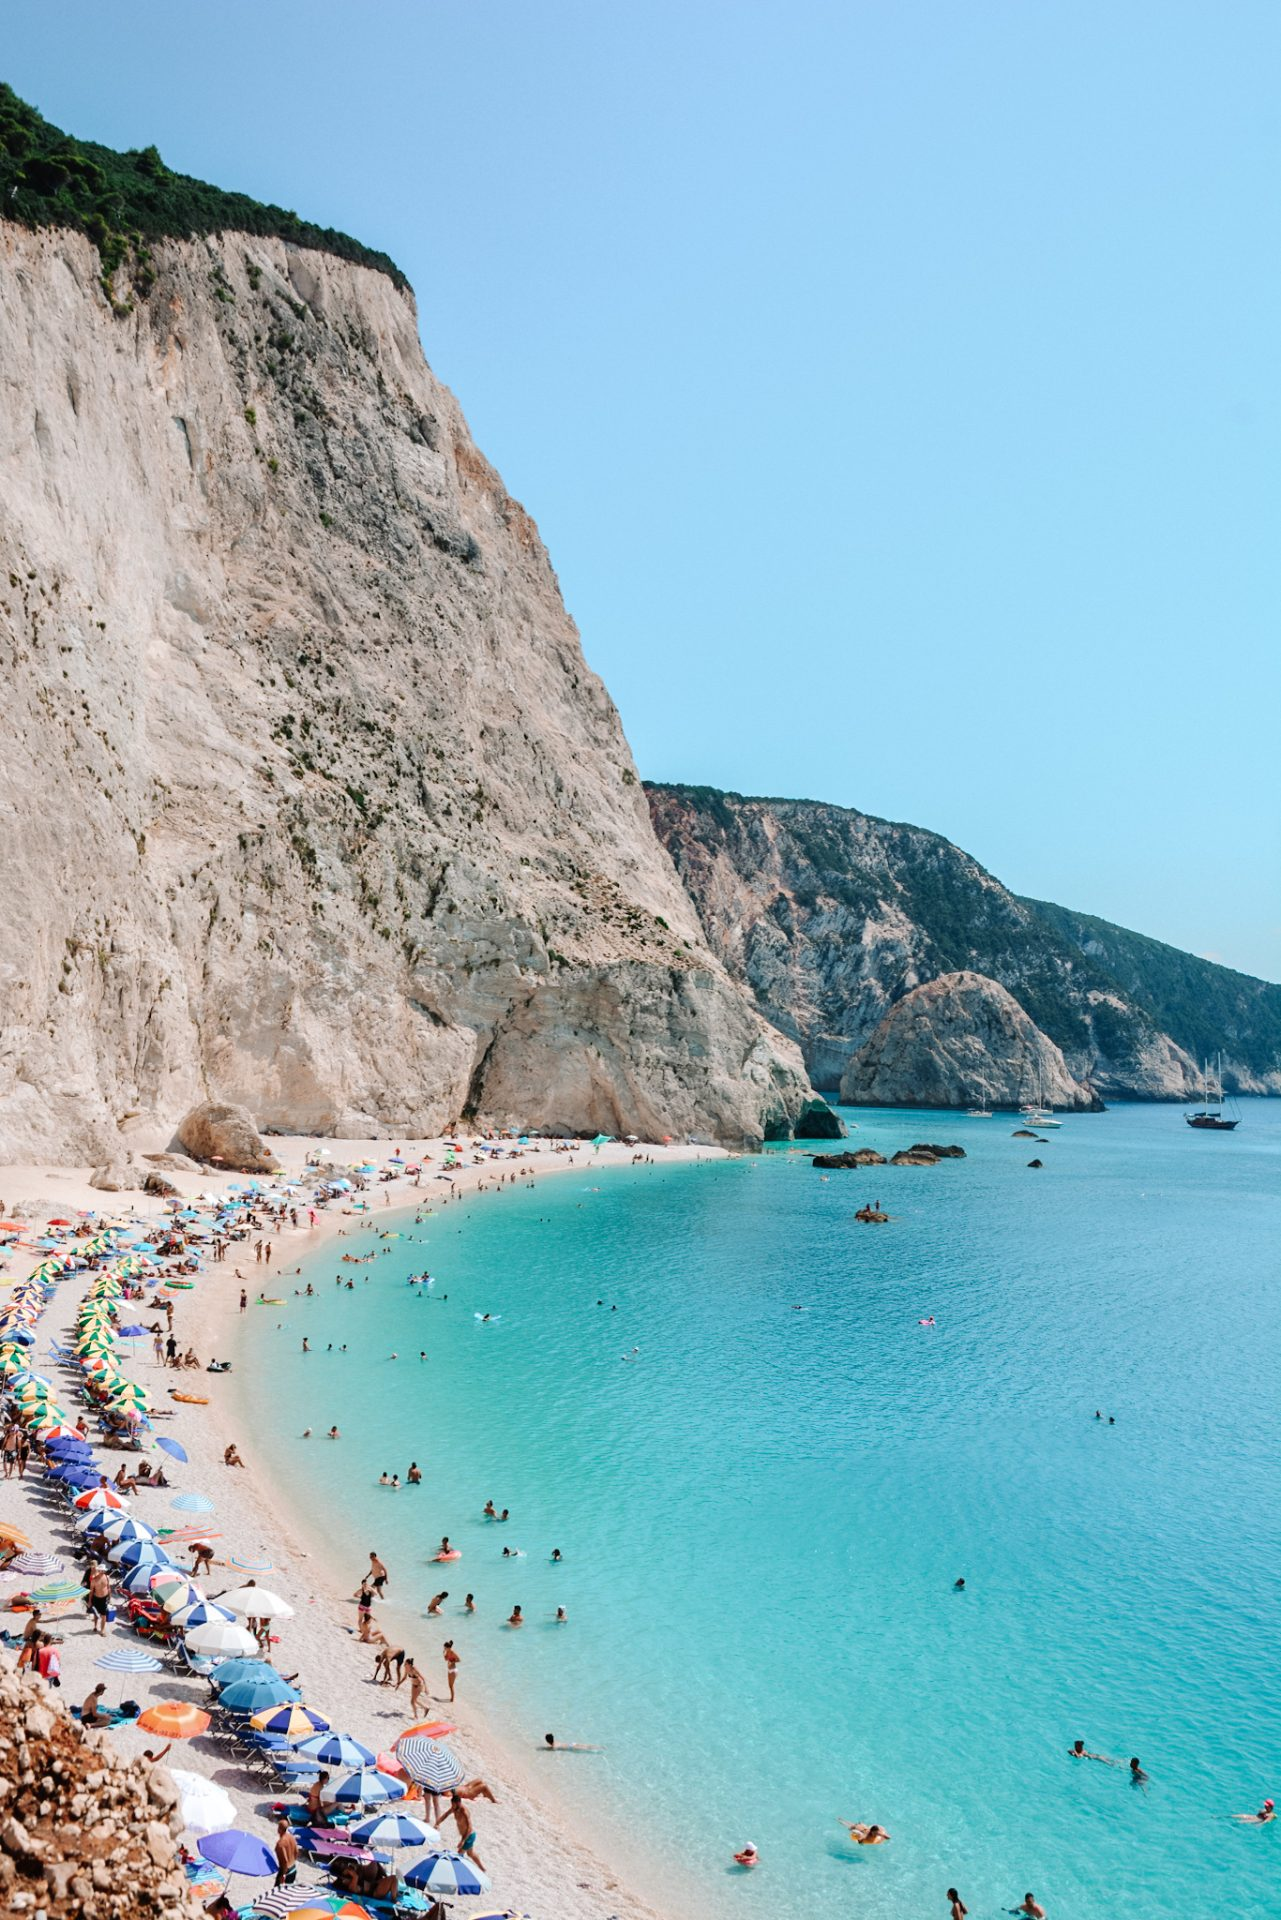 The best beach in Lefkada is Porto Katsiki